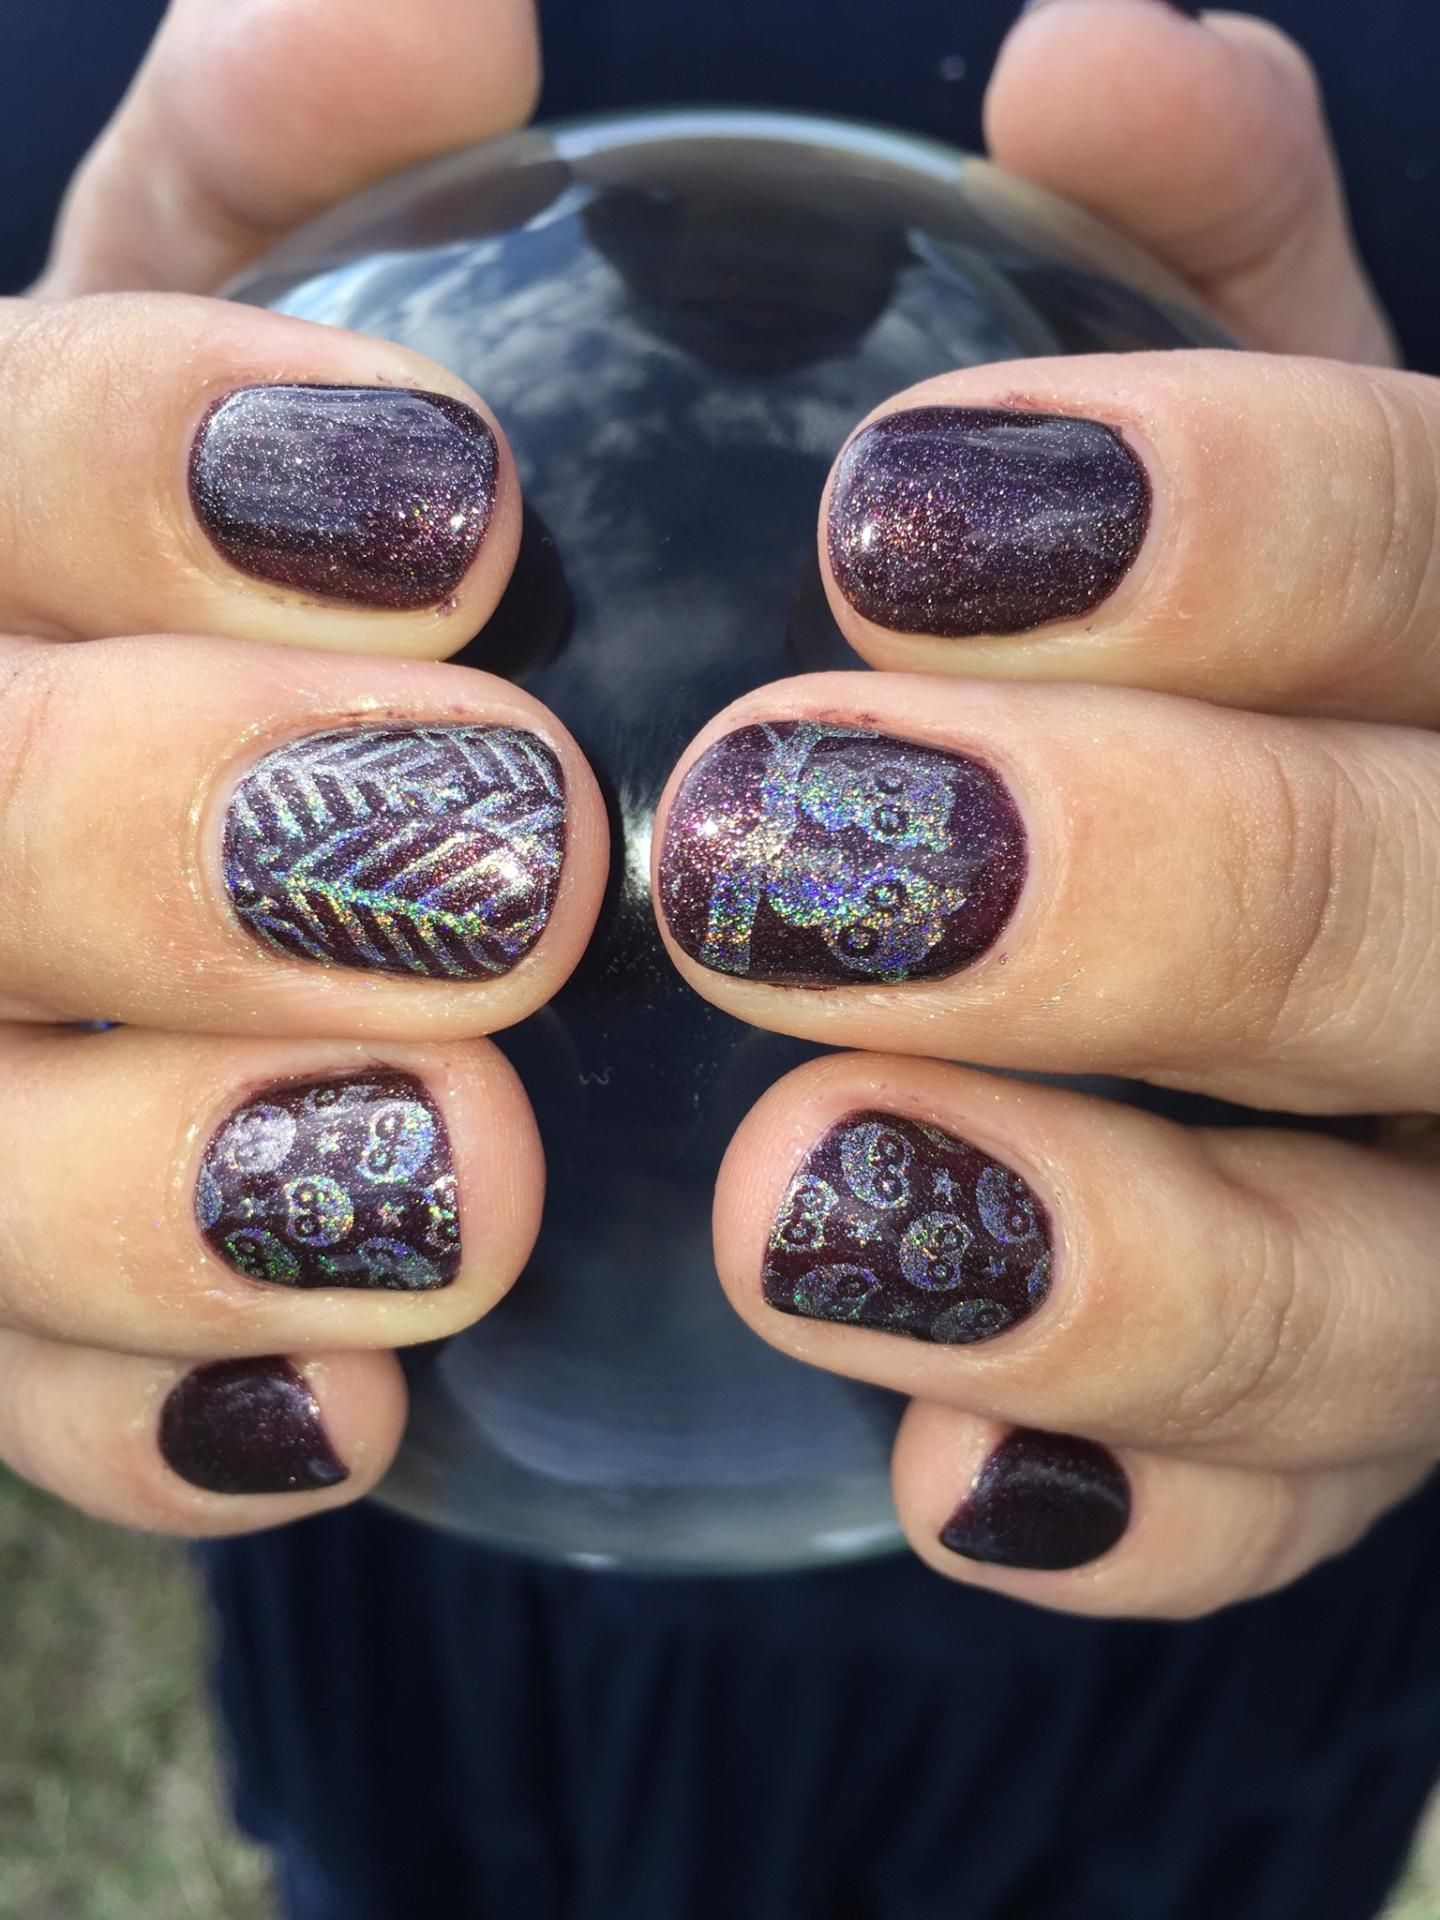 The Brown Is Gelish Whose Cider You On The Stamp Is Color Club Cherubic Plate Is Born Pretty